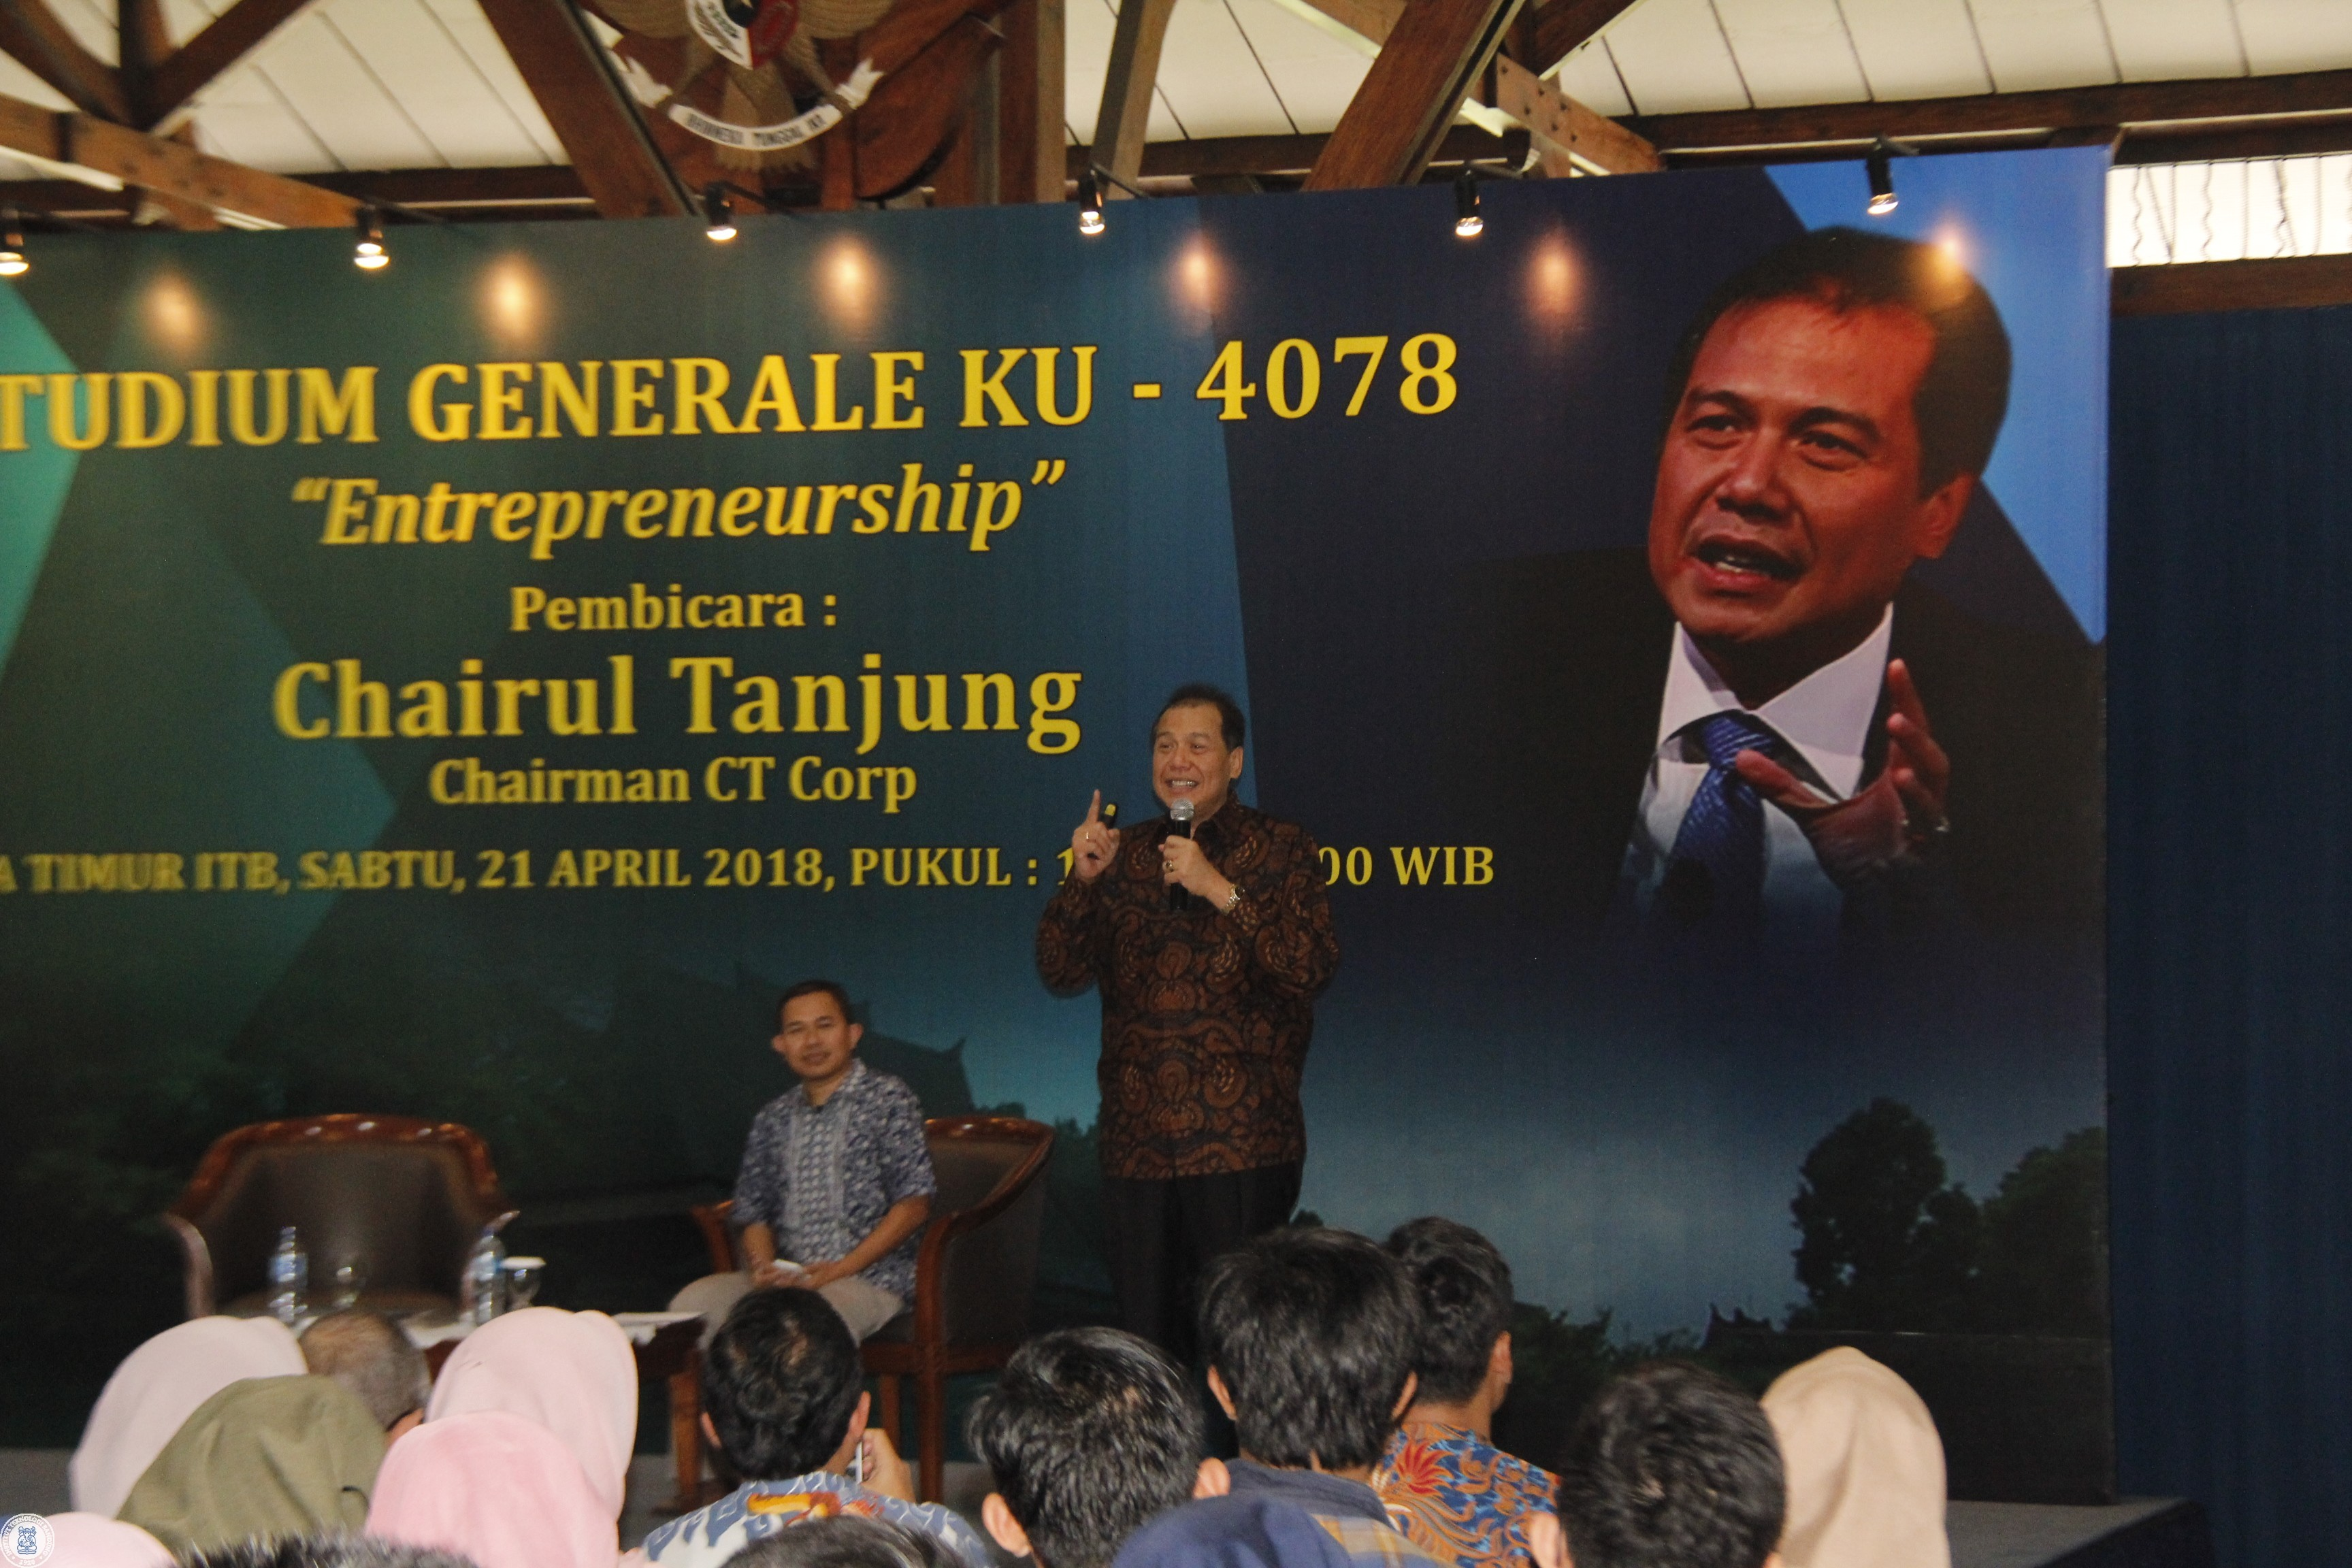 chairul-tanjung-shared-his-experience-at-entrepreneurship-studium-generale-public-lecture-itb